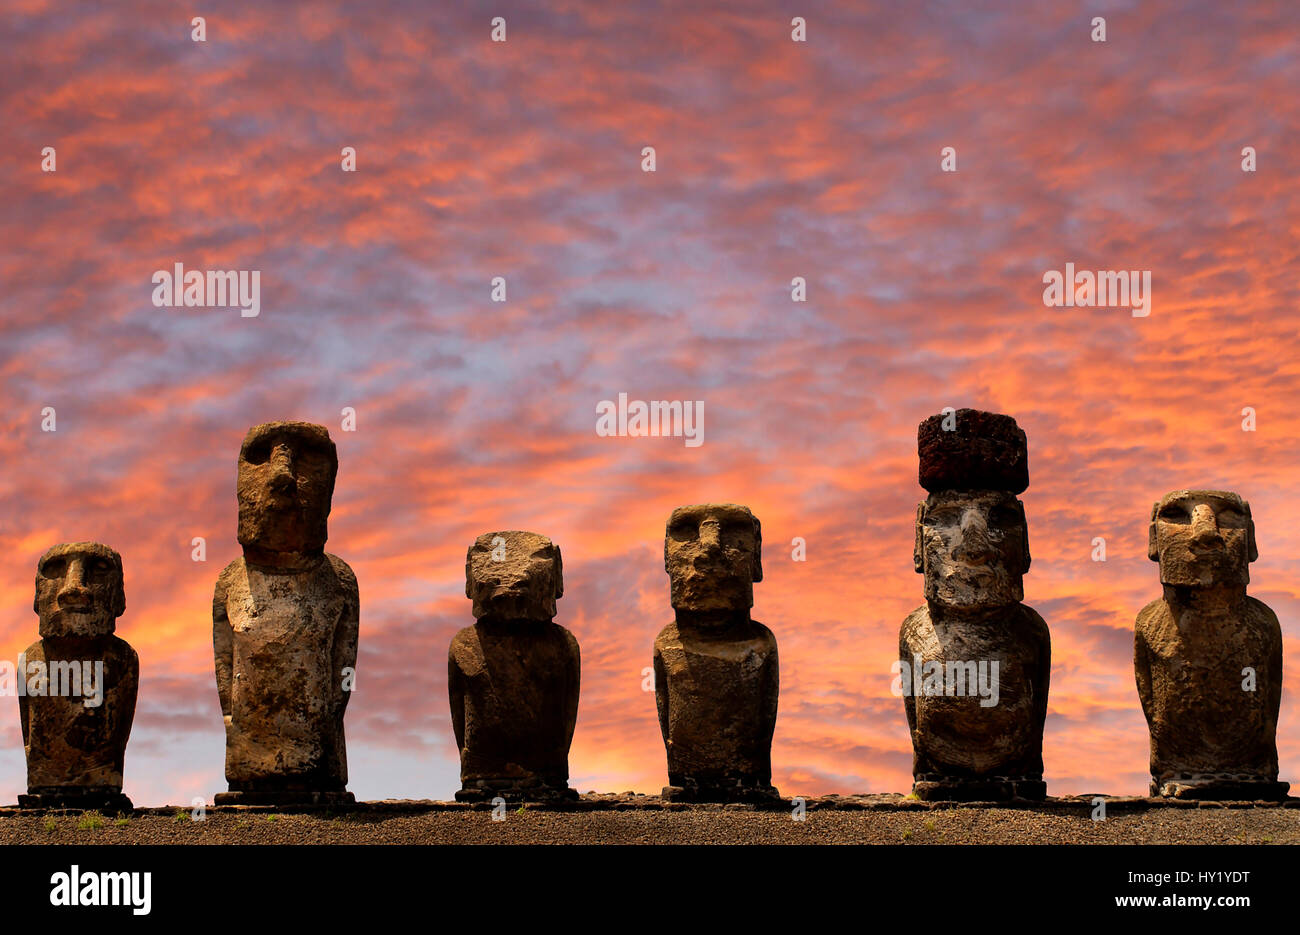 This image shows 6 Moai Statues at  Ahu Tongariki on Easter Island - Stock Image